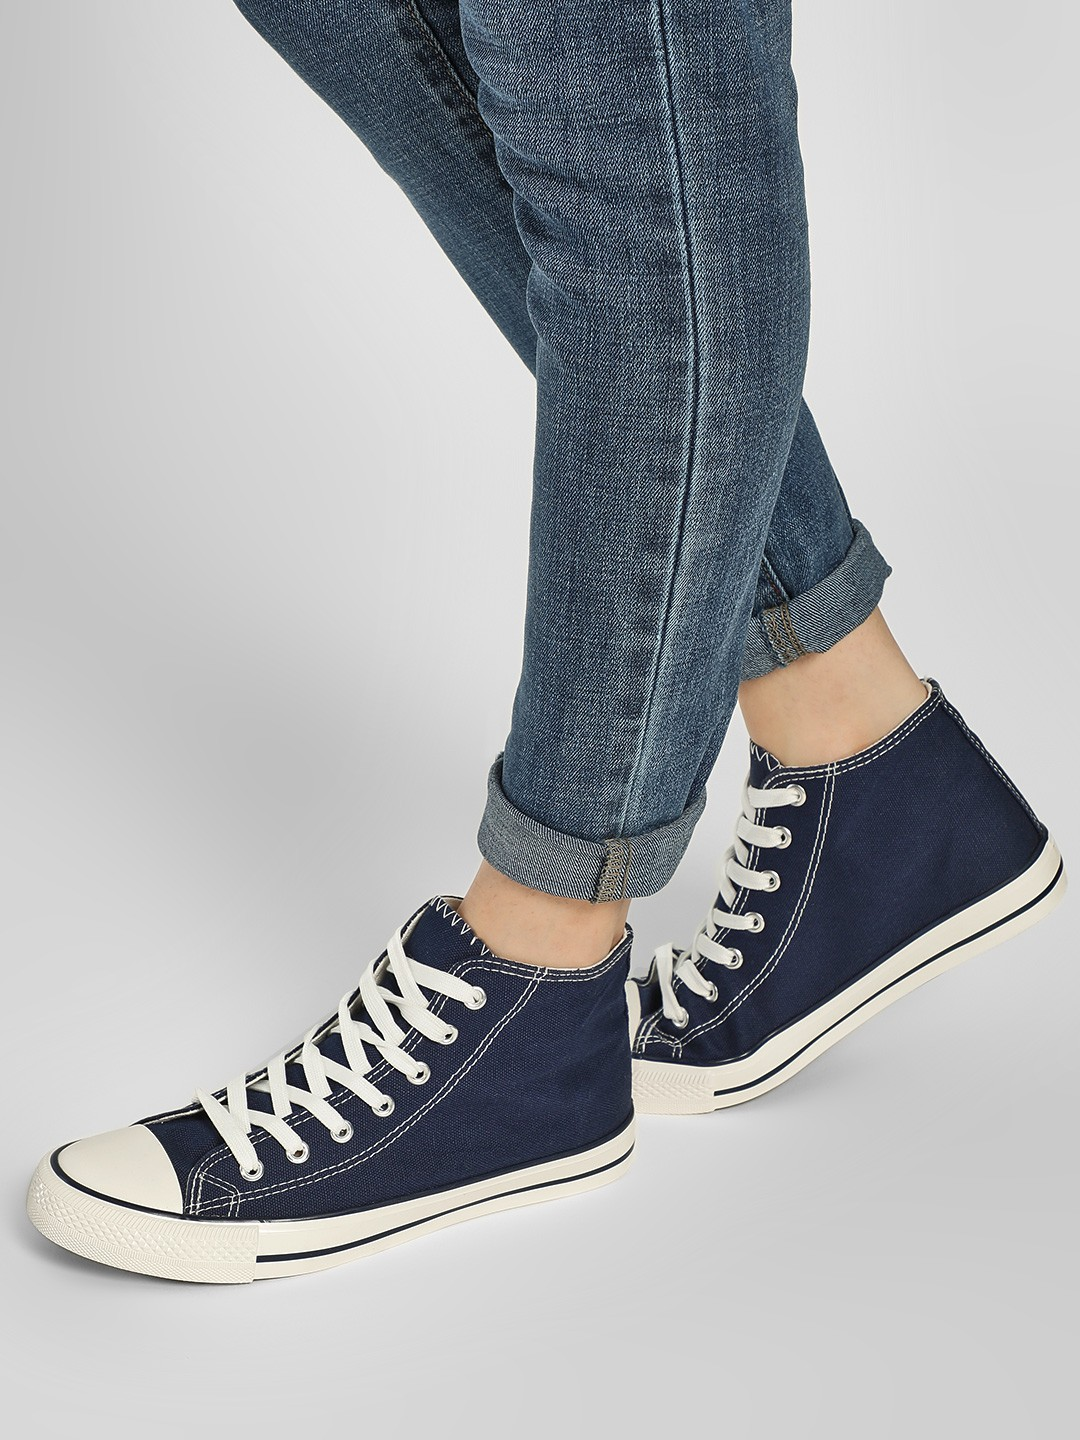 New Look Blue Mid-Top Canvas Sneakers 1